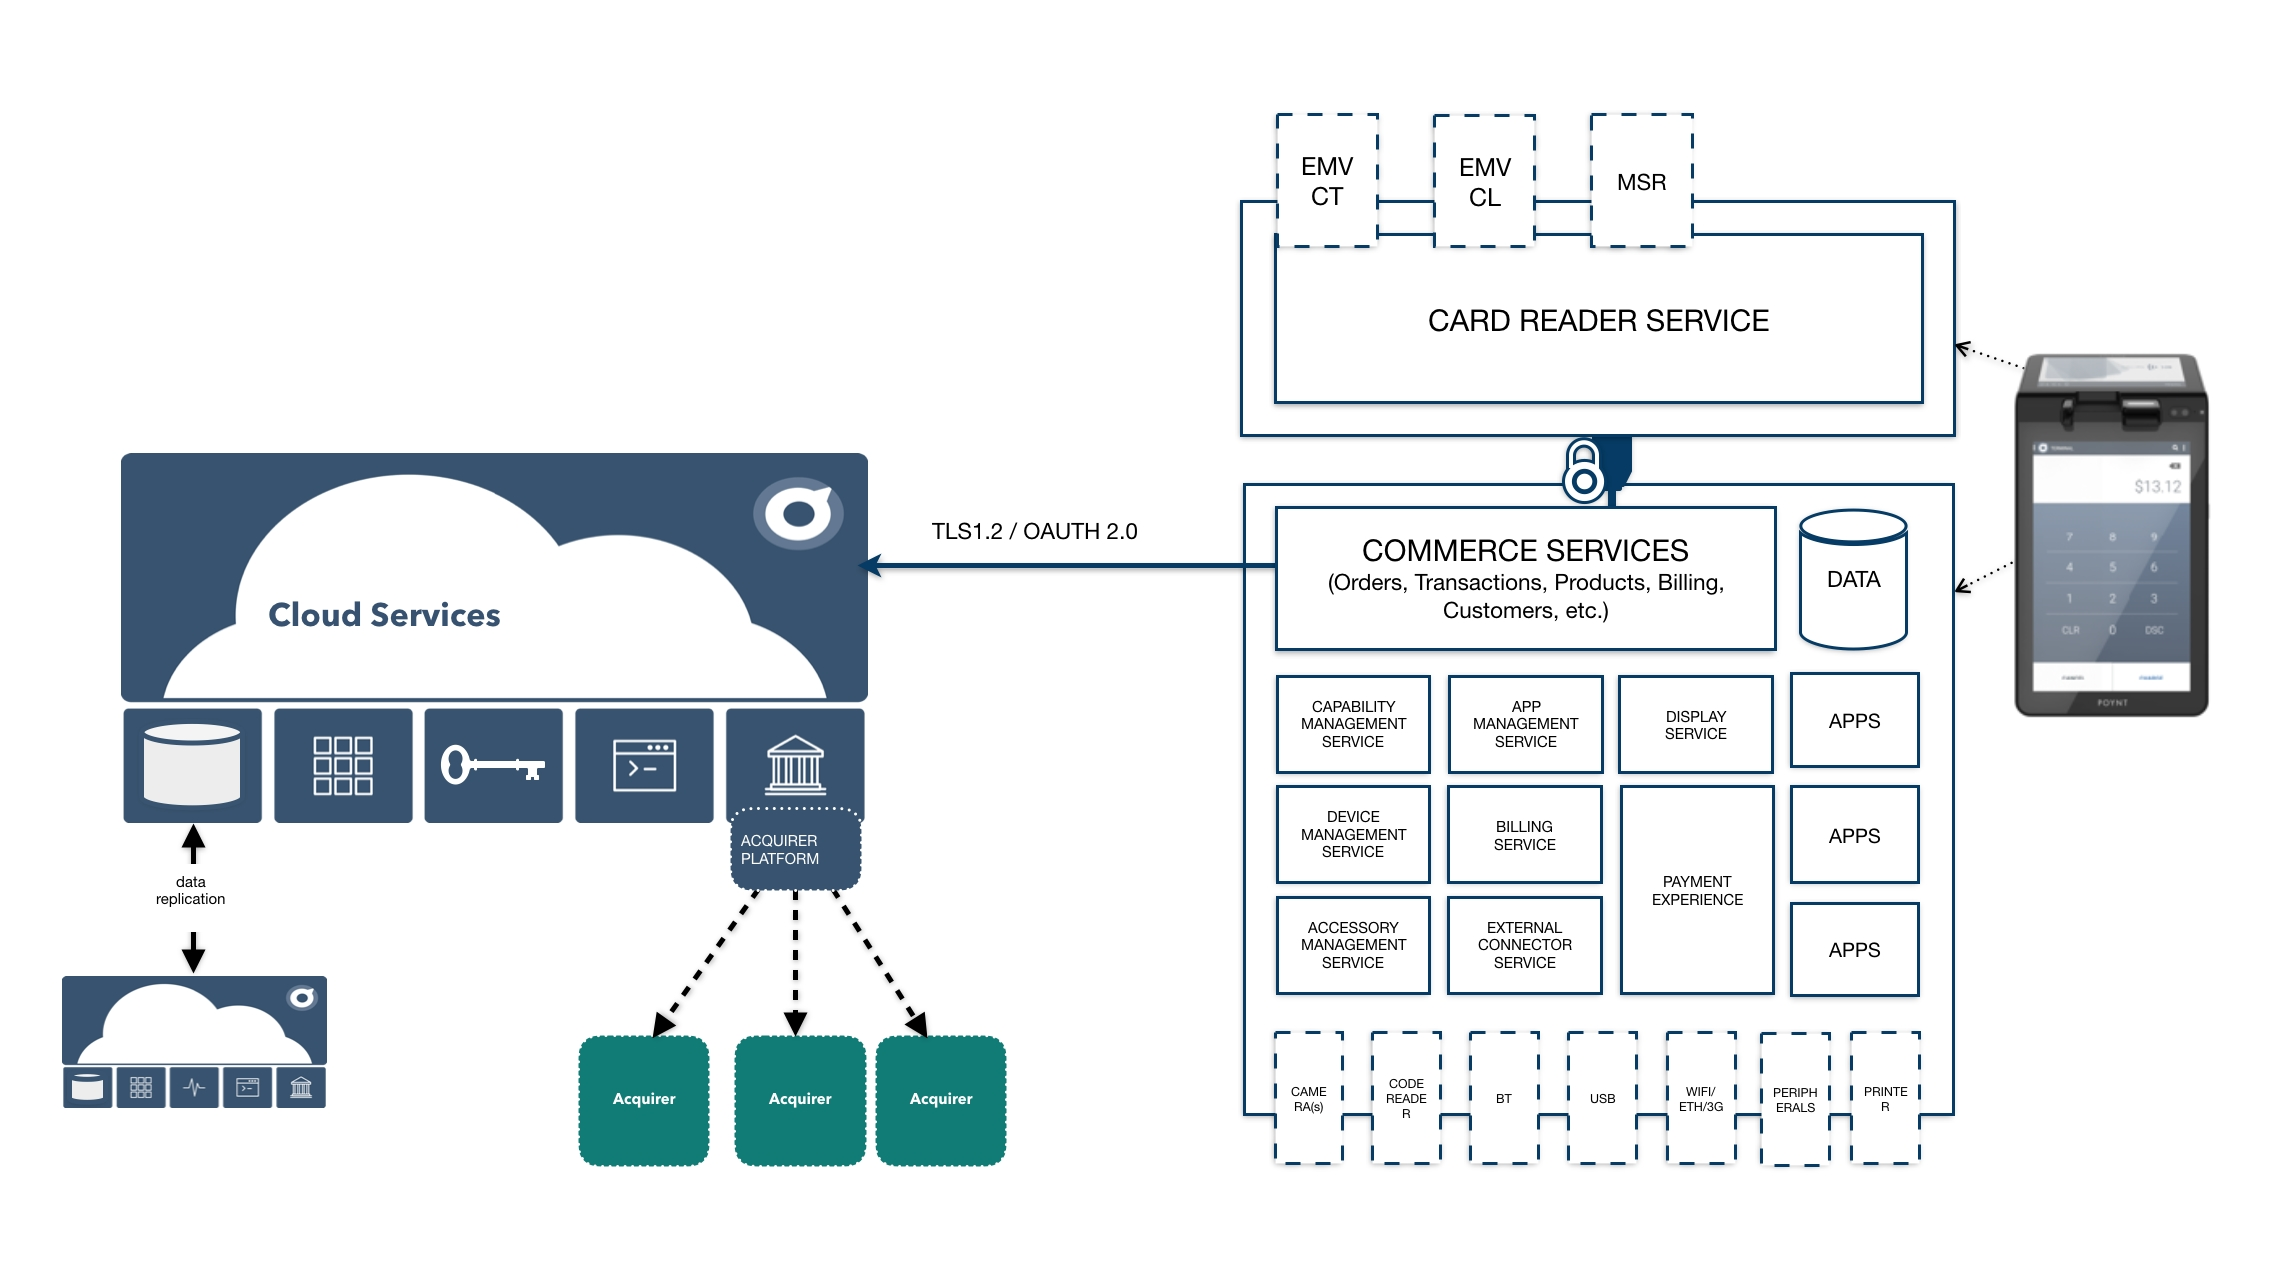 An integration first approach to building a commerce platform for card reader service rather than providing access to low level card reader interfaces that would give access to sensitive card data to everyone fandeluxe Images